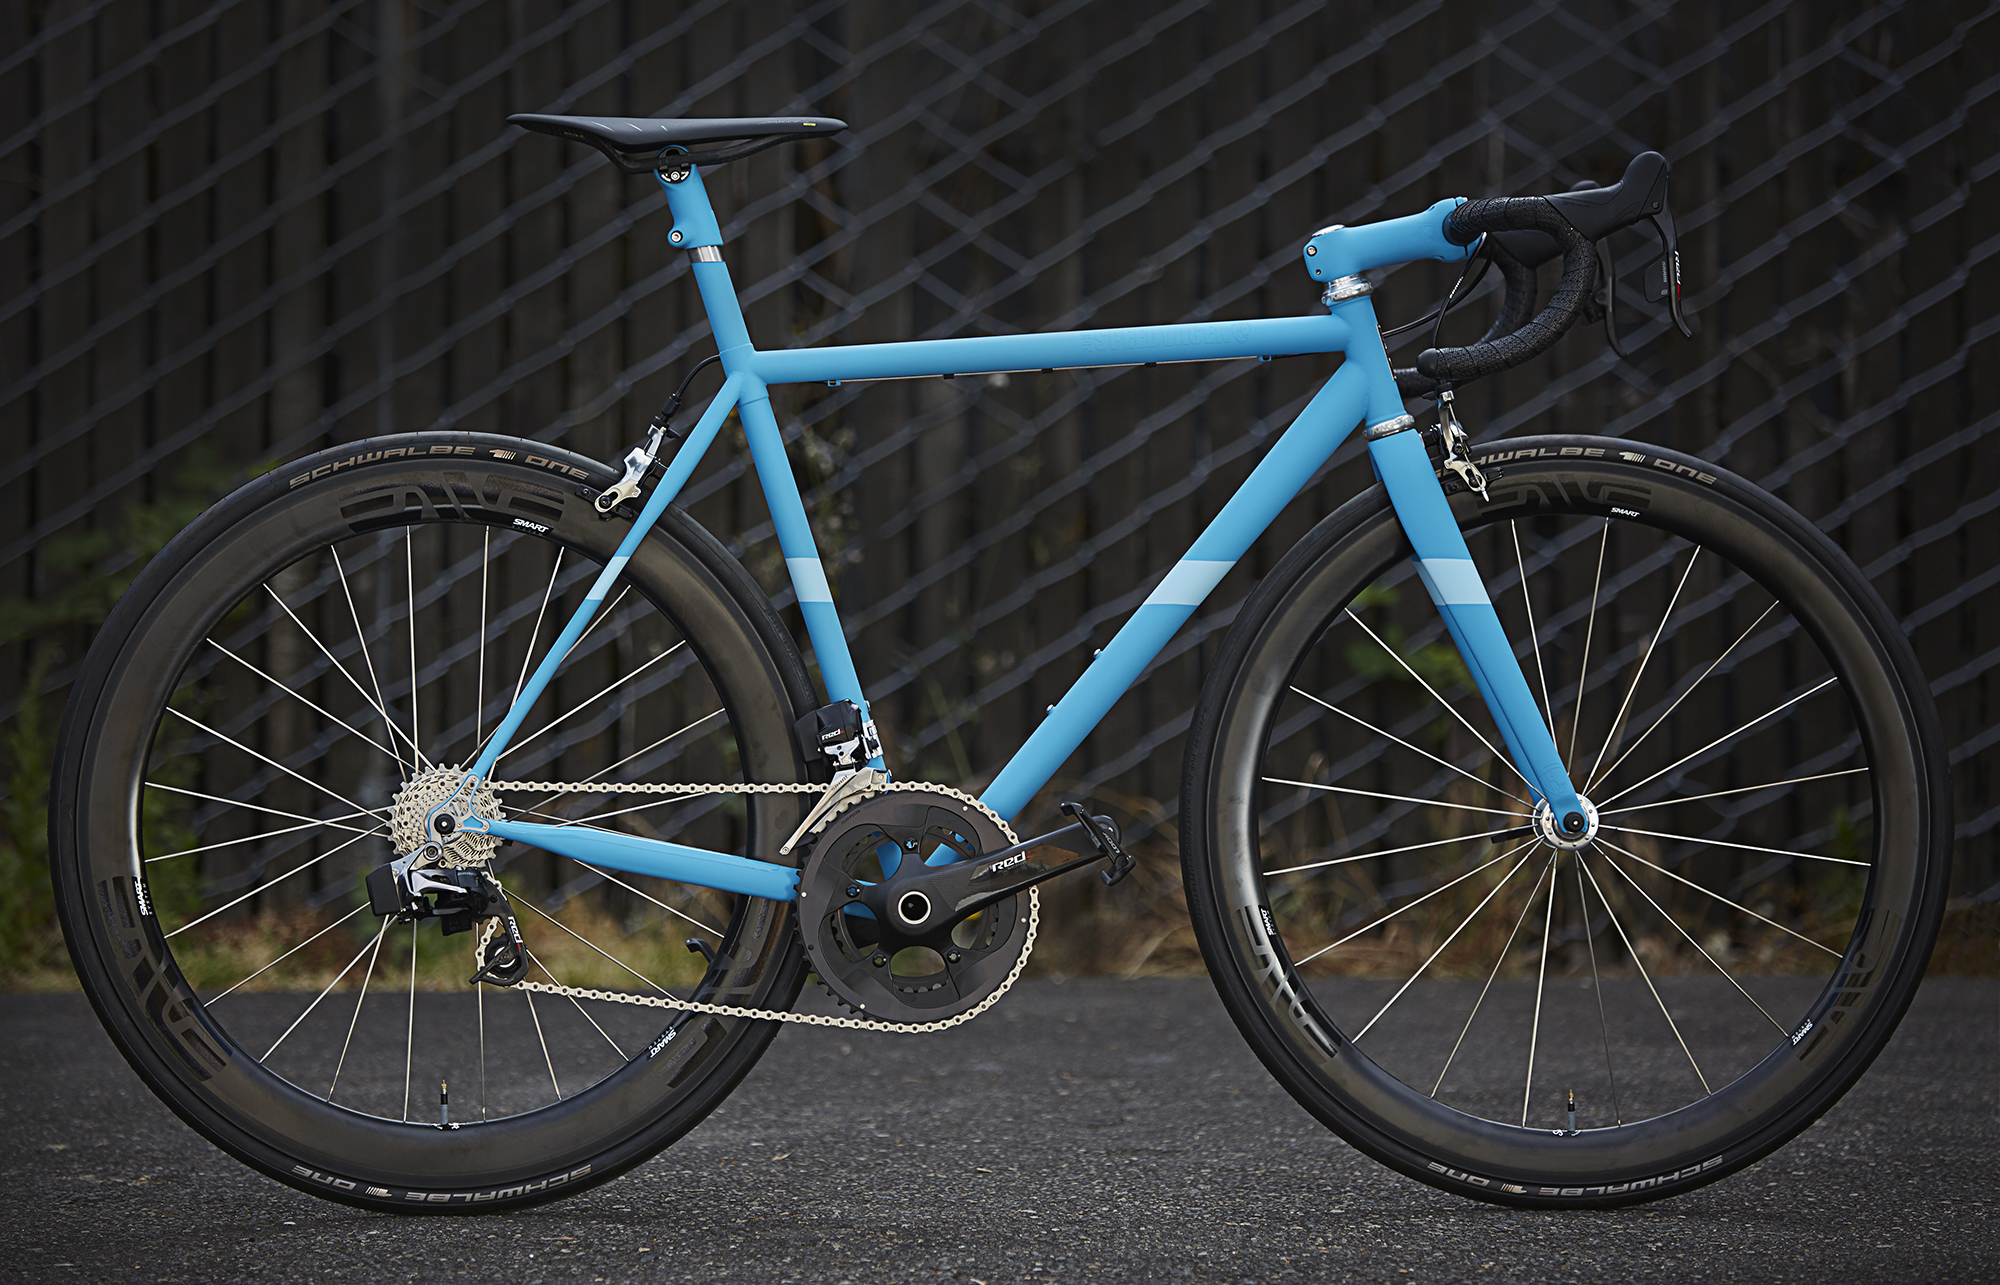 Nyc Meet Your Handbuilt Dream Bike Gearminded